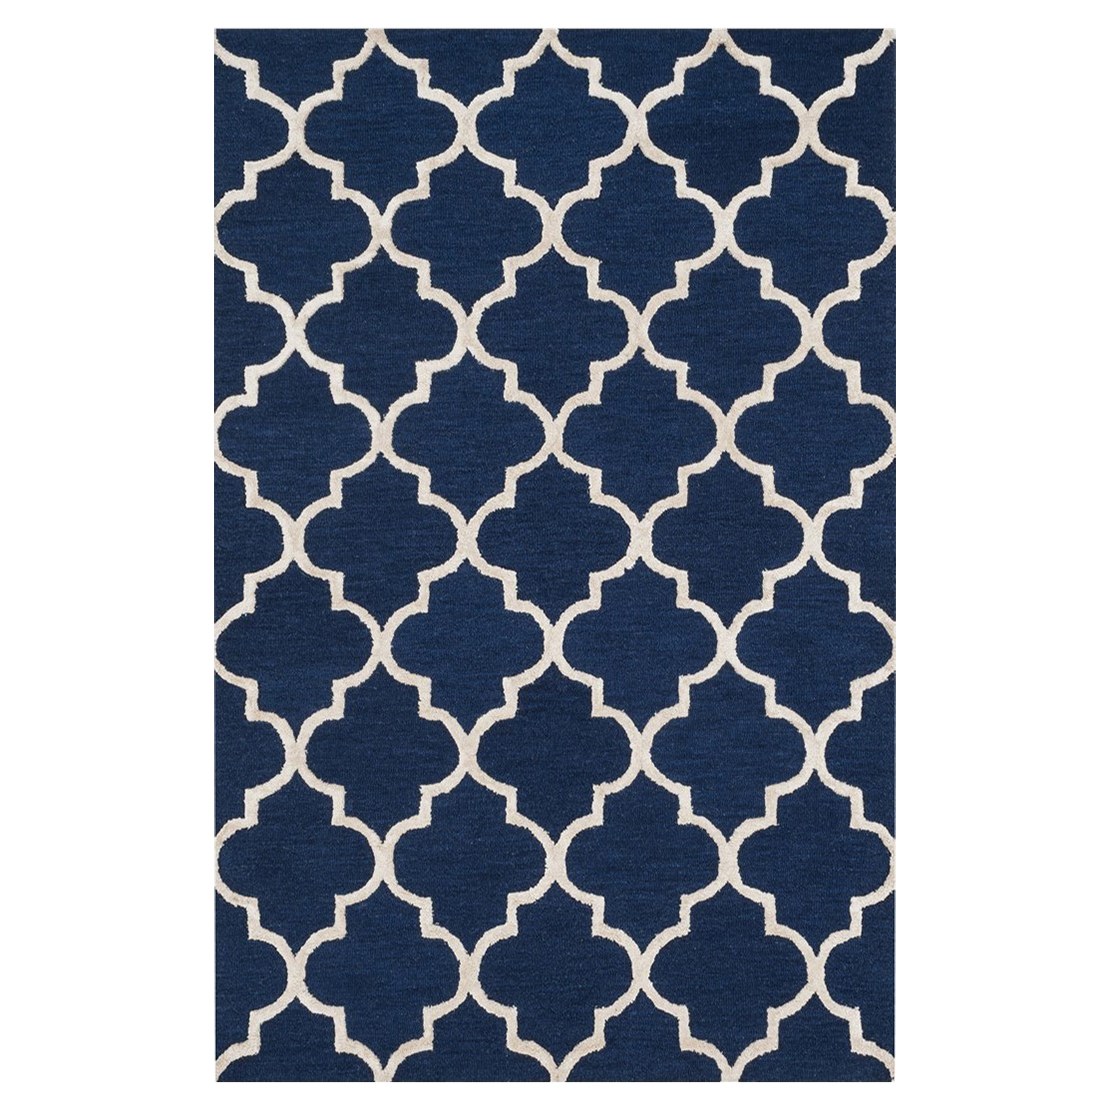 Casa Coastal Modern Navy Trellis Wool Rug - Sample